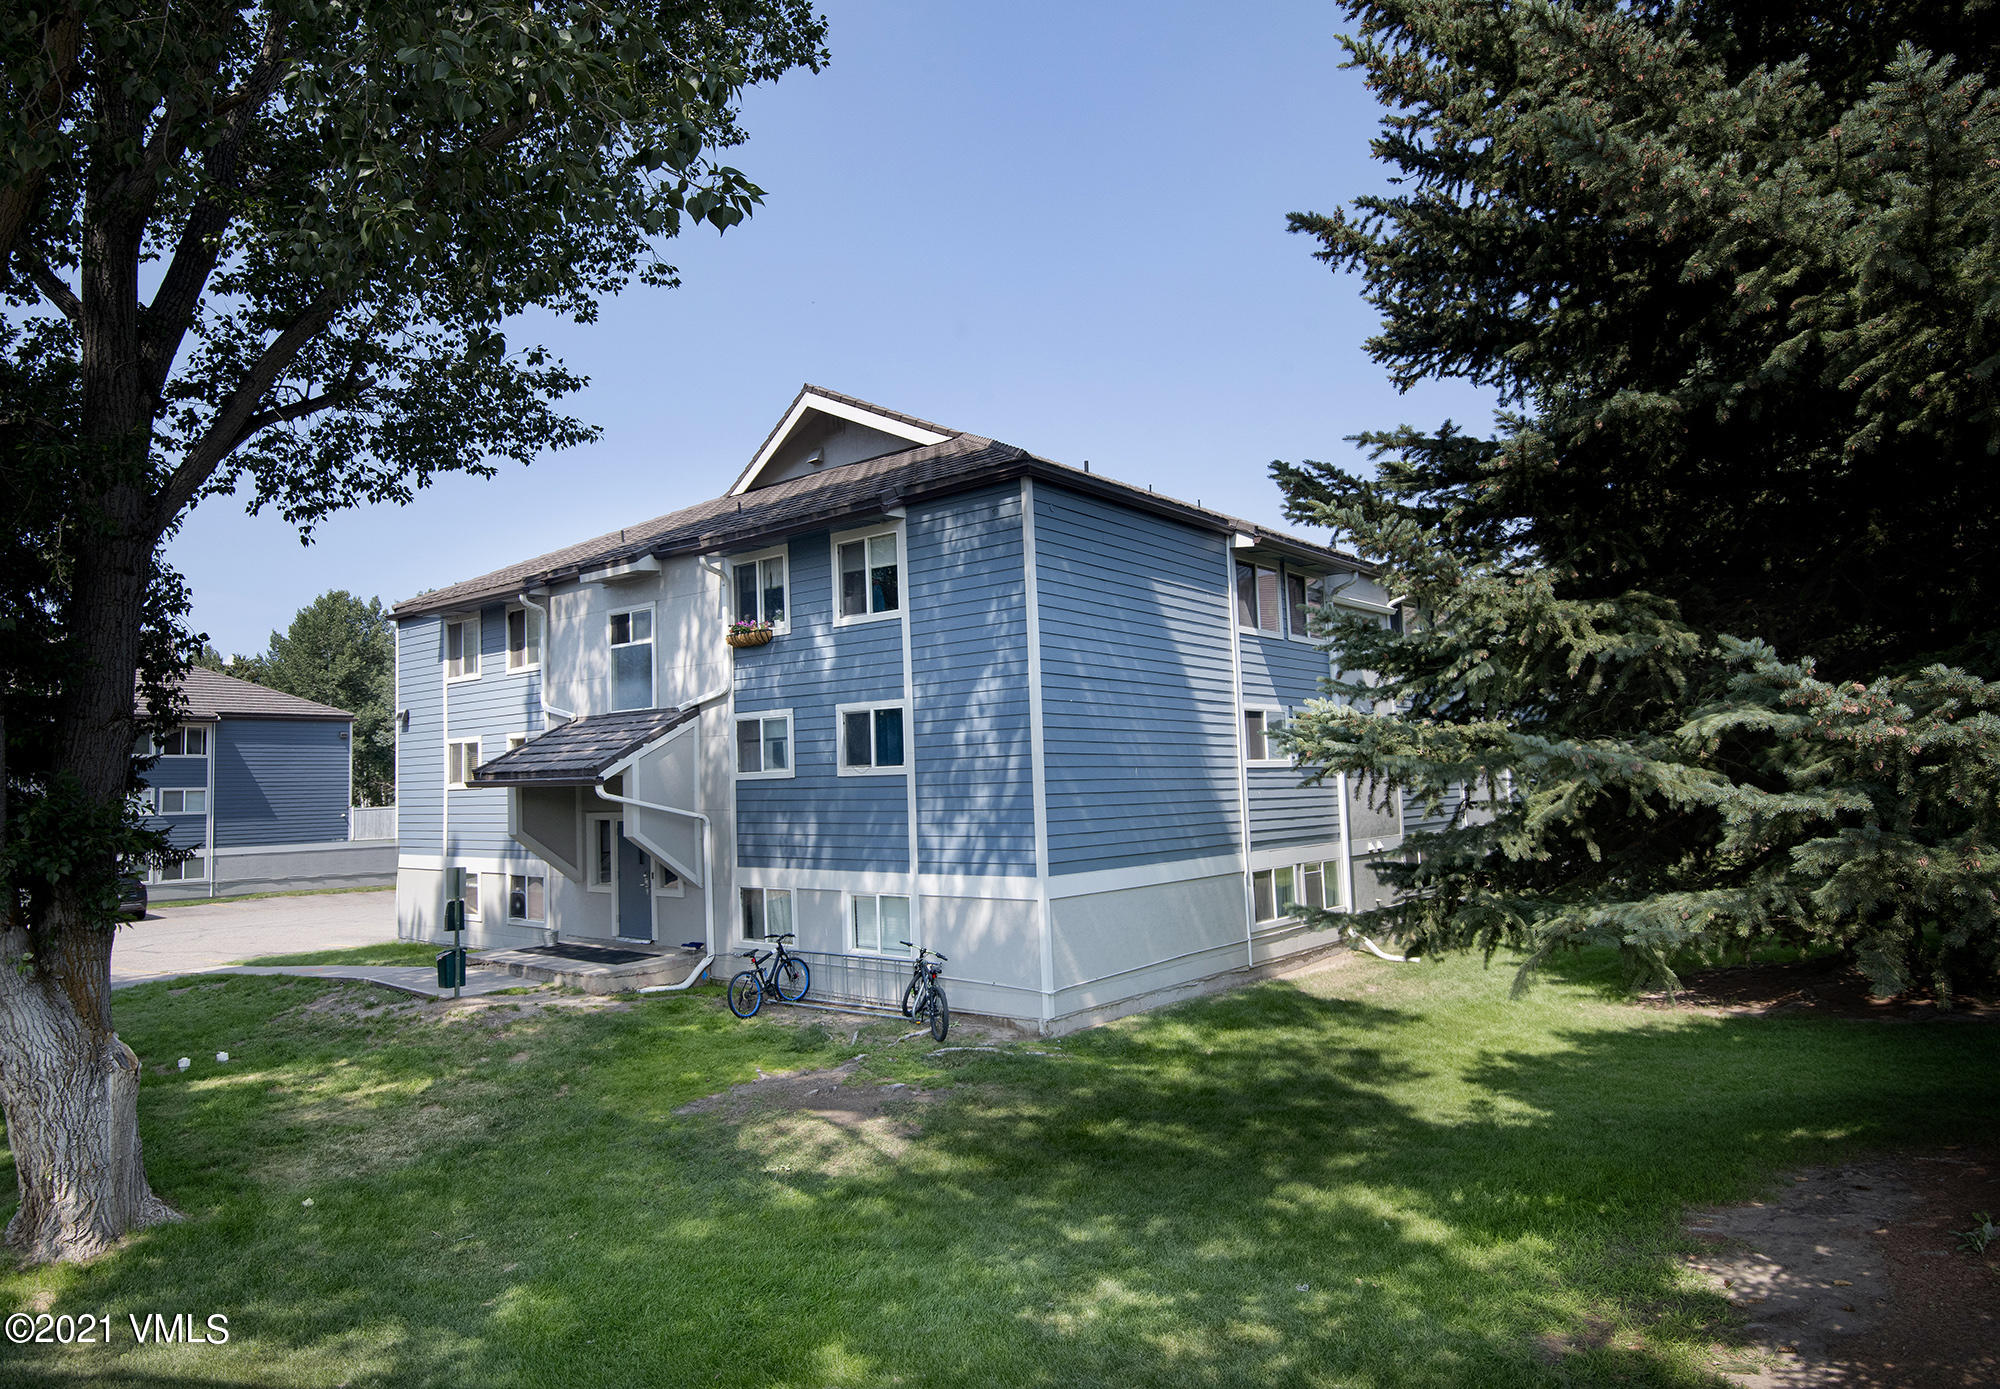 2 Bed one Bath corner top floor apartment with separate kitchen from living - dining area.Convenient location close to park, bus stop, library, recreation center, bike path and parking to Beaver Creek.